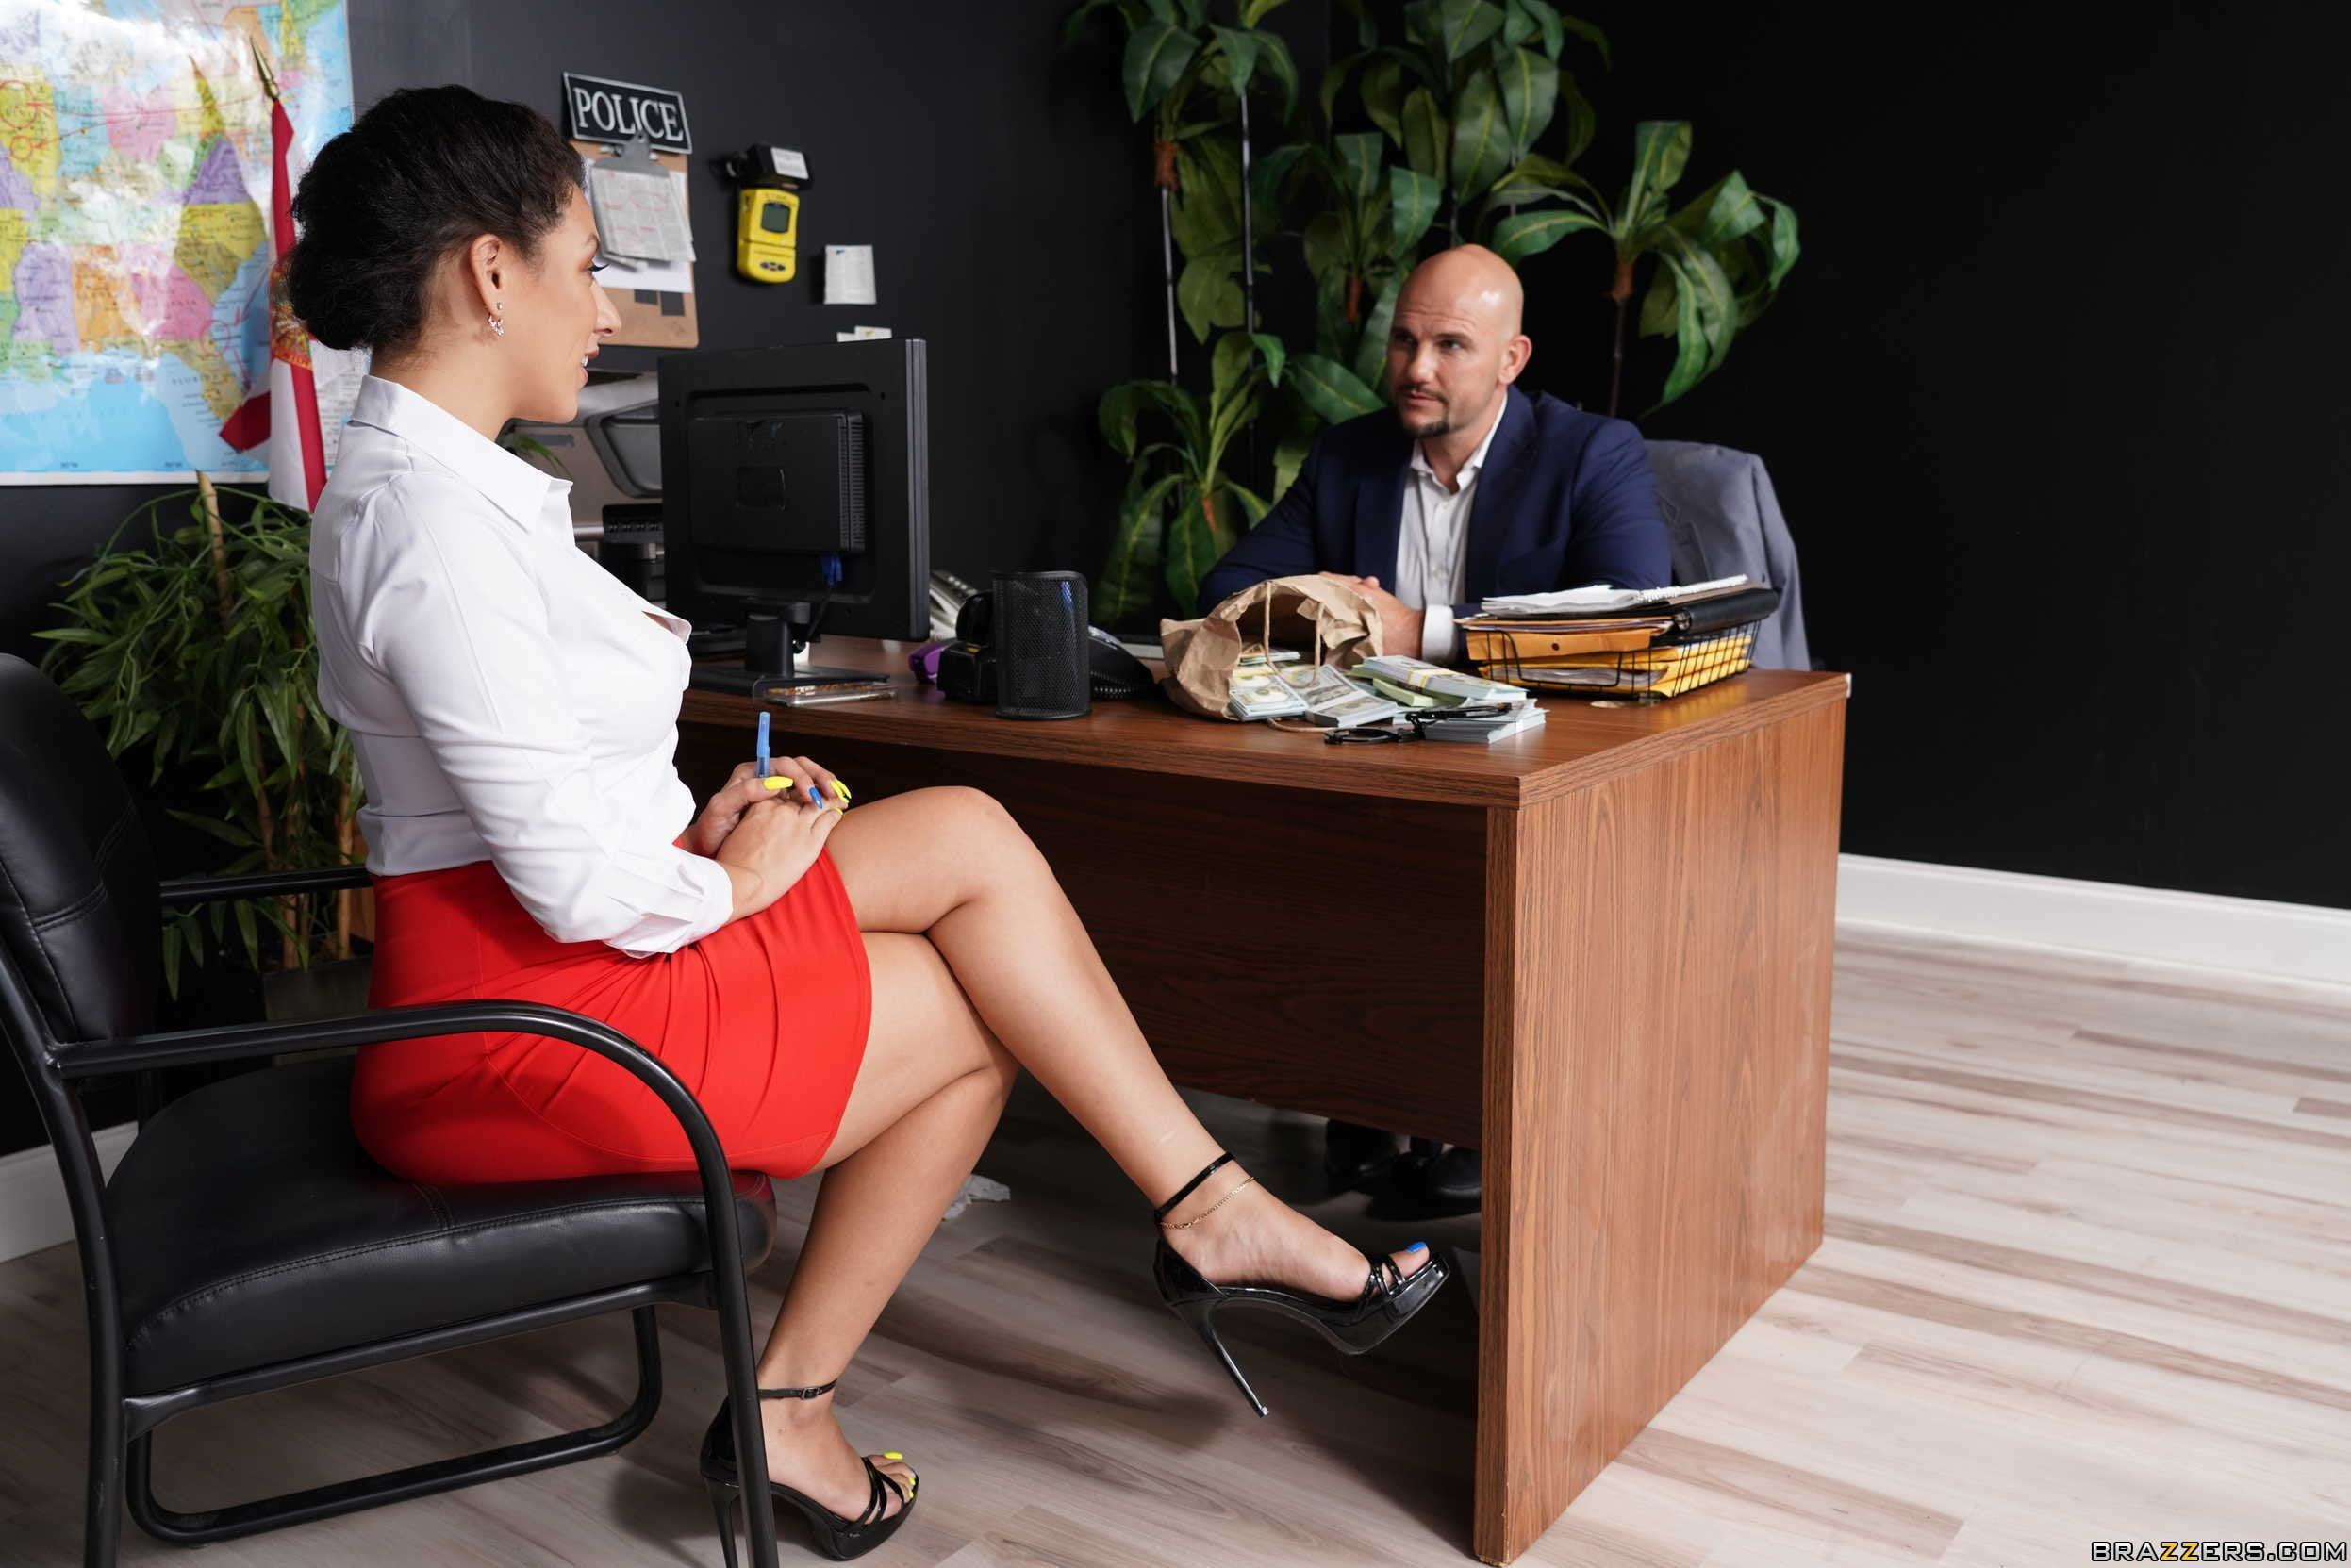 BigTitsAtWork - Valentina Jewels - Internal Affairs